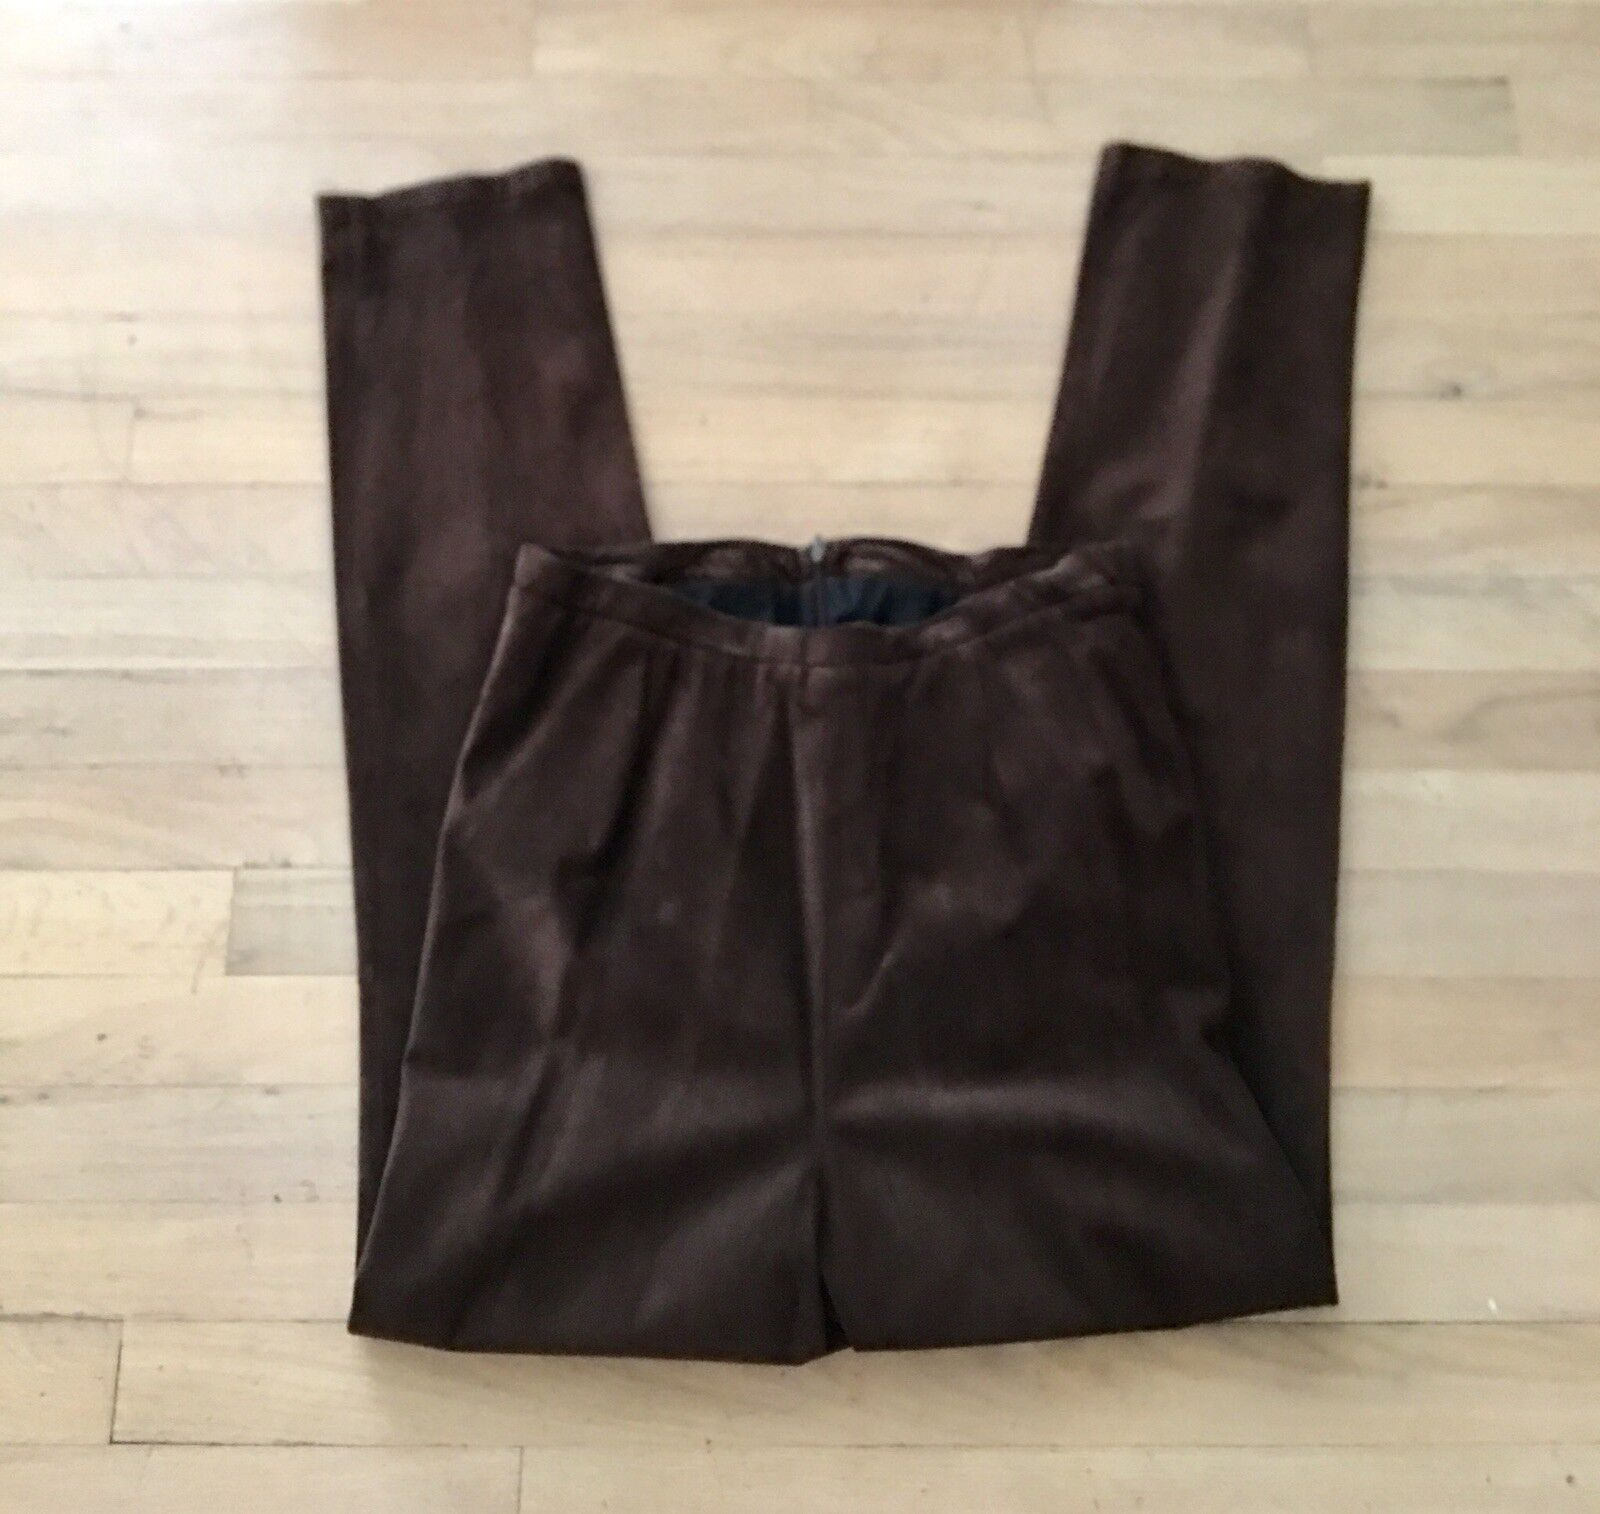 NWT MATERNITY PANTS BROWN SUEDE LINED LINED Straight Leg  Small  285 Retail